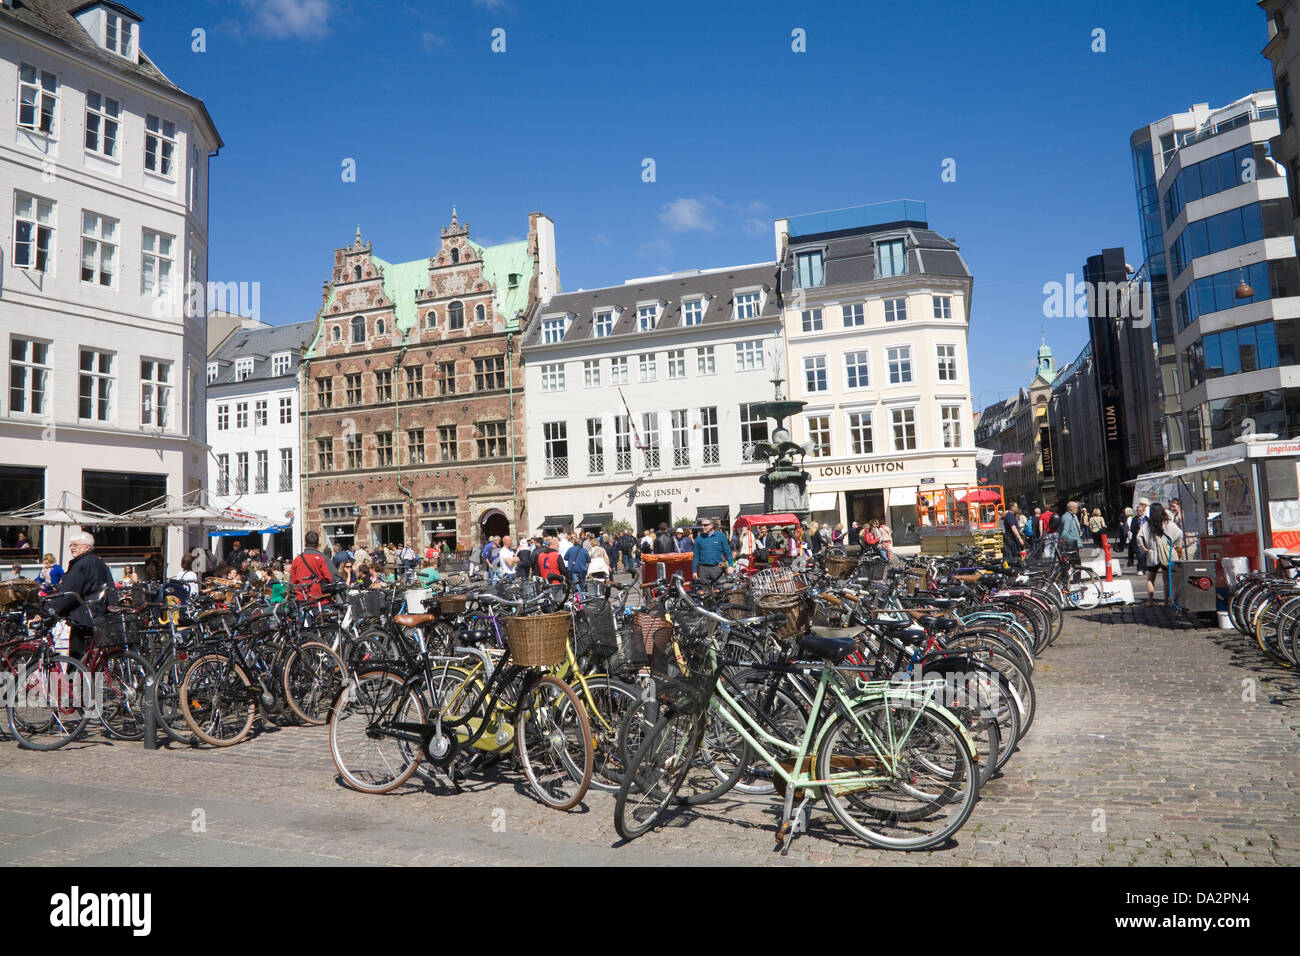 Copenhagen Denmark EU Rows of bicycles parked in Amagertorv with the Stork Fountain - Stock Image